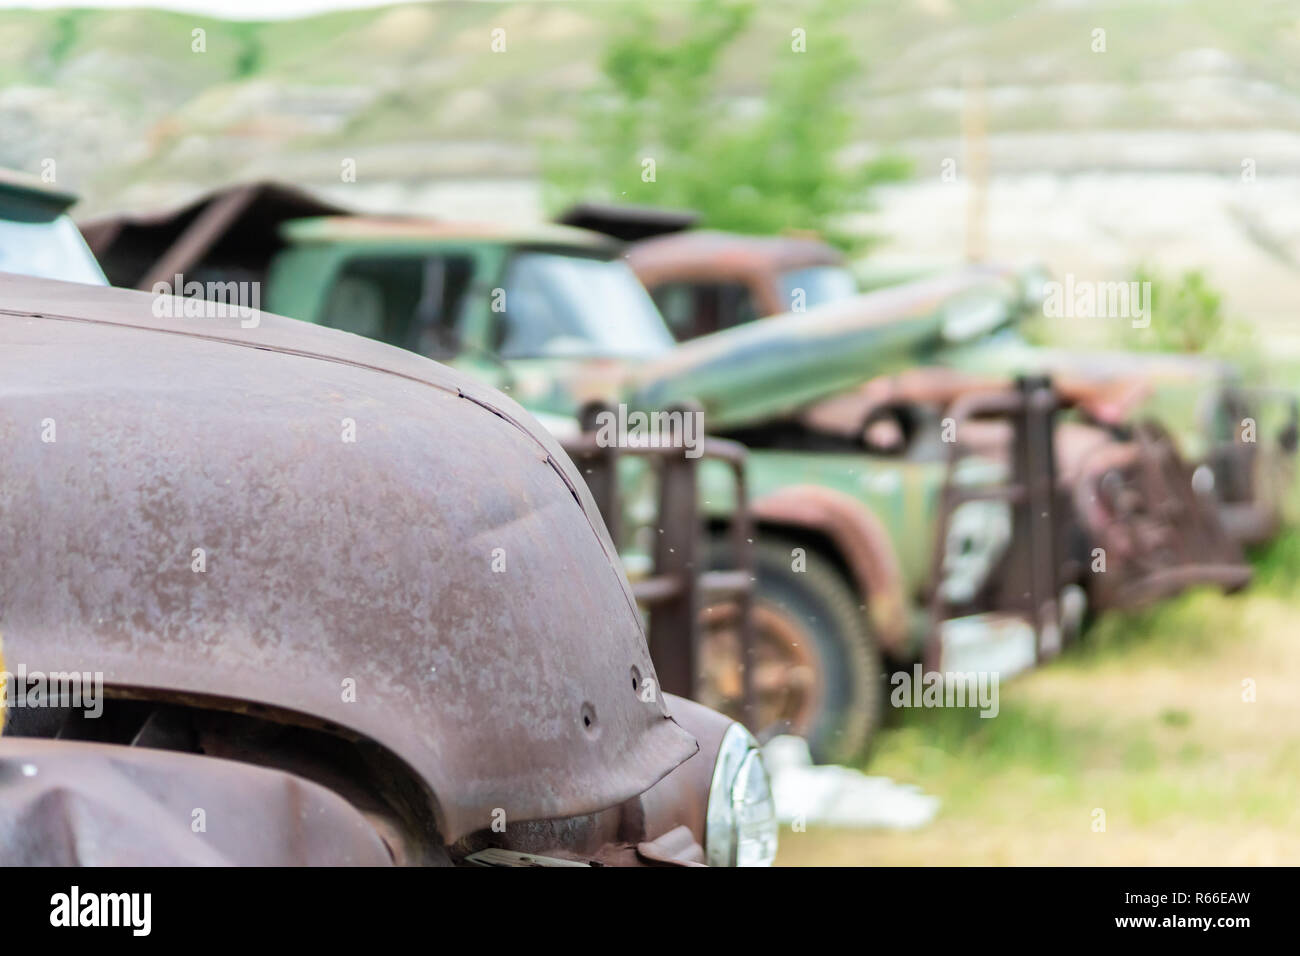 Junk car yard to recyle old and worn out vehicles - Stock Image